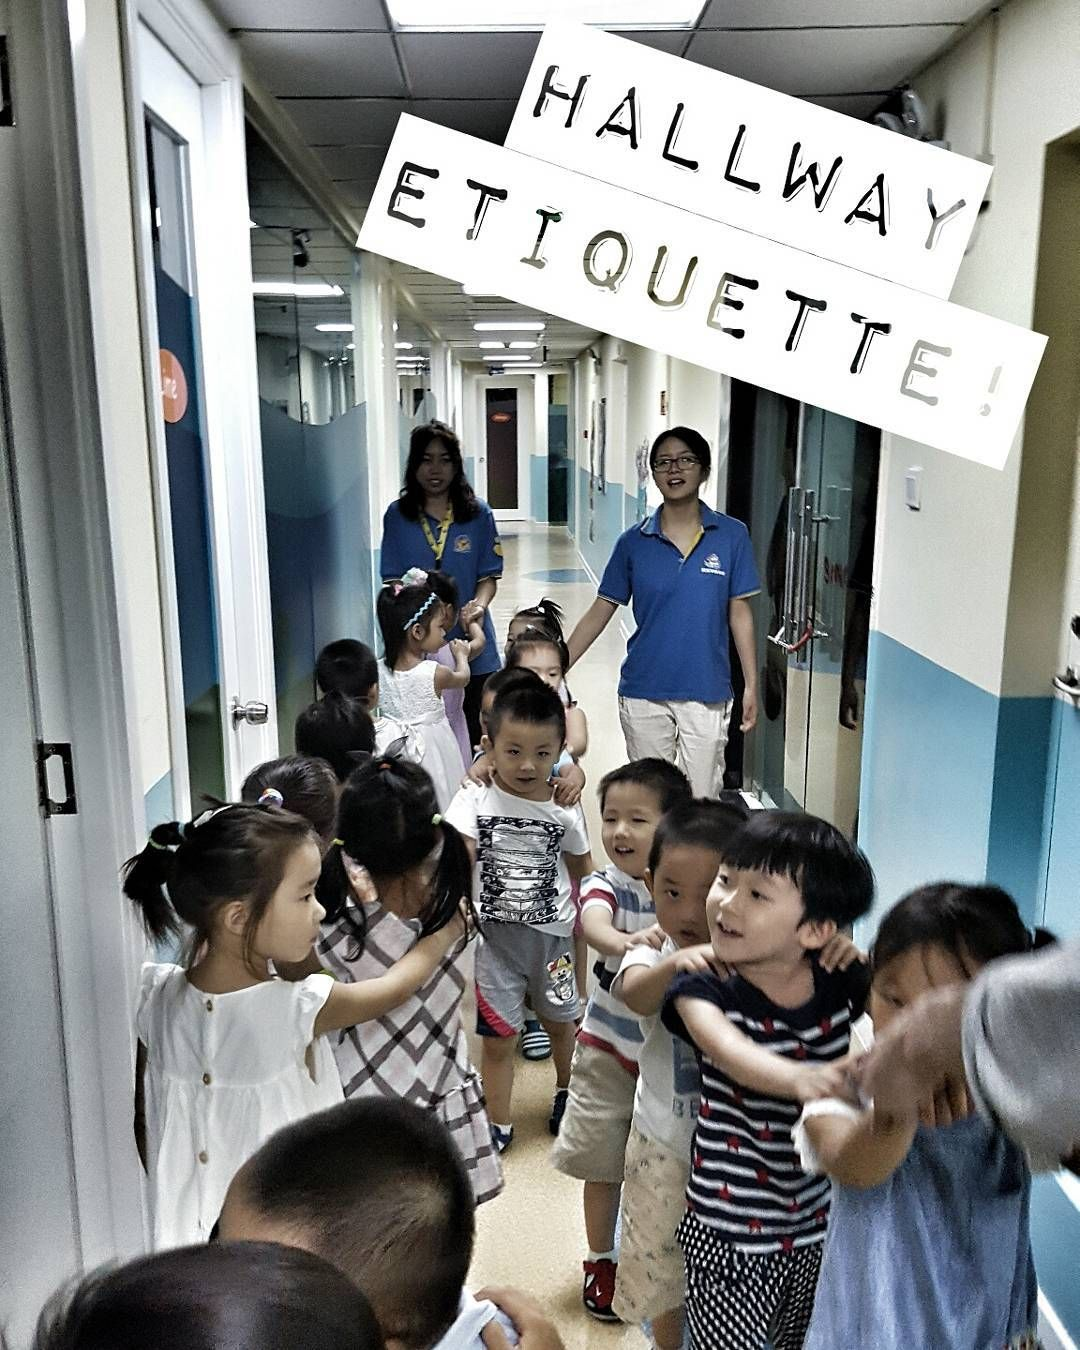 Here we are practicing a little bit of our hallway manners and etiquette. No punching the other class children... #hallway #lineup